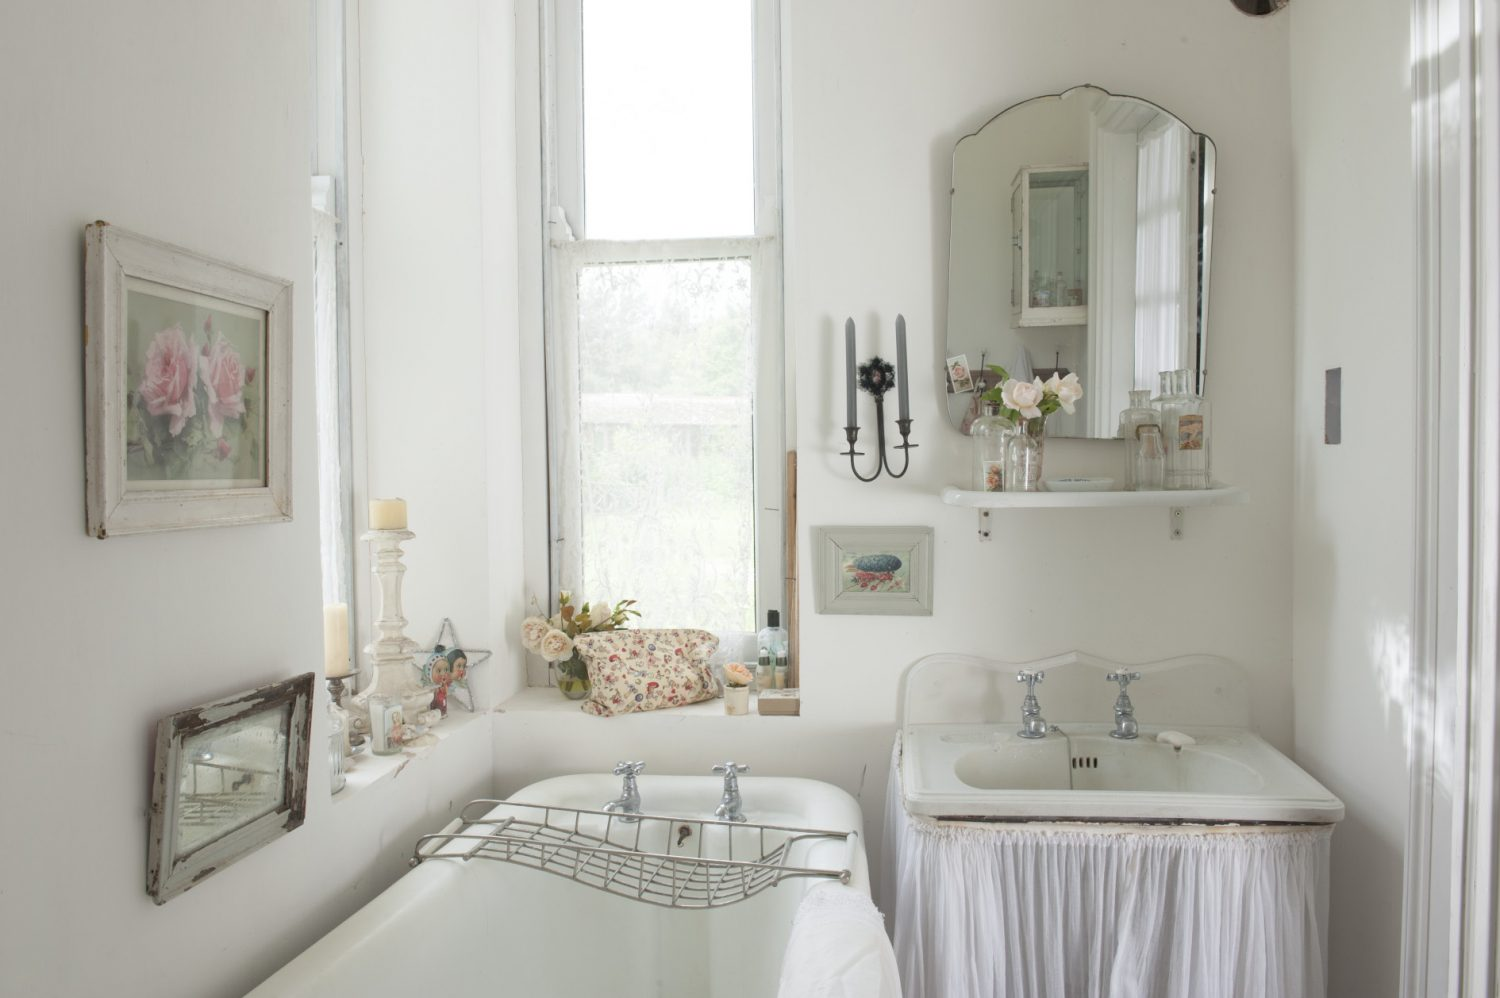 n the downstairs bathroom a pair of narrow glass panelled doors are hung with tightly gathered muslin curtains for privacy